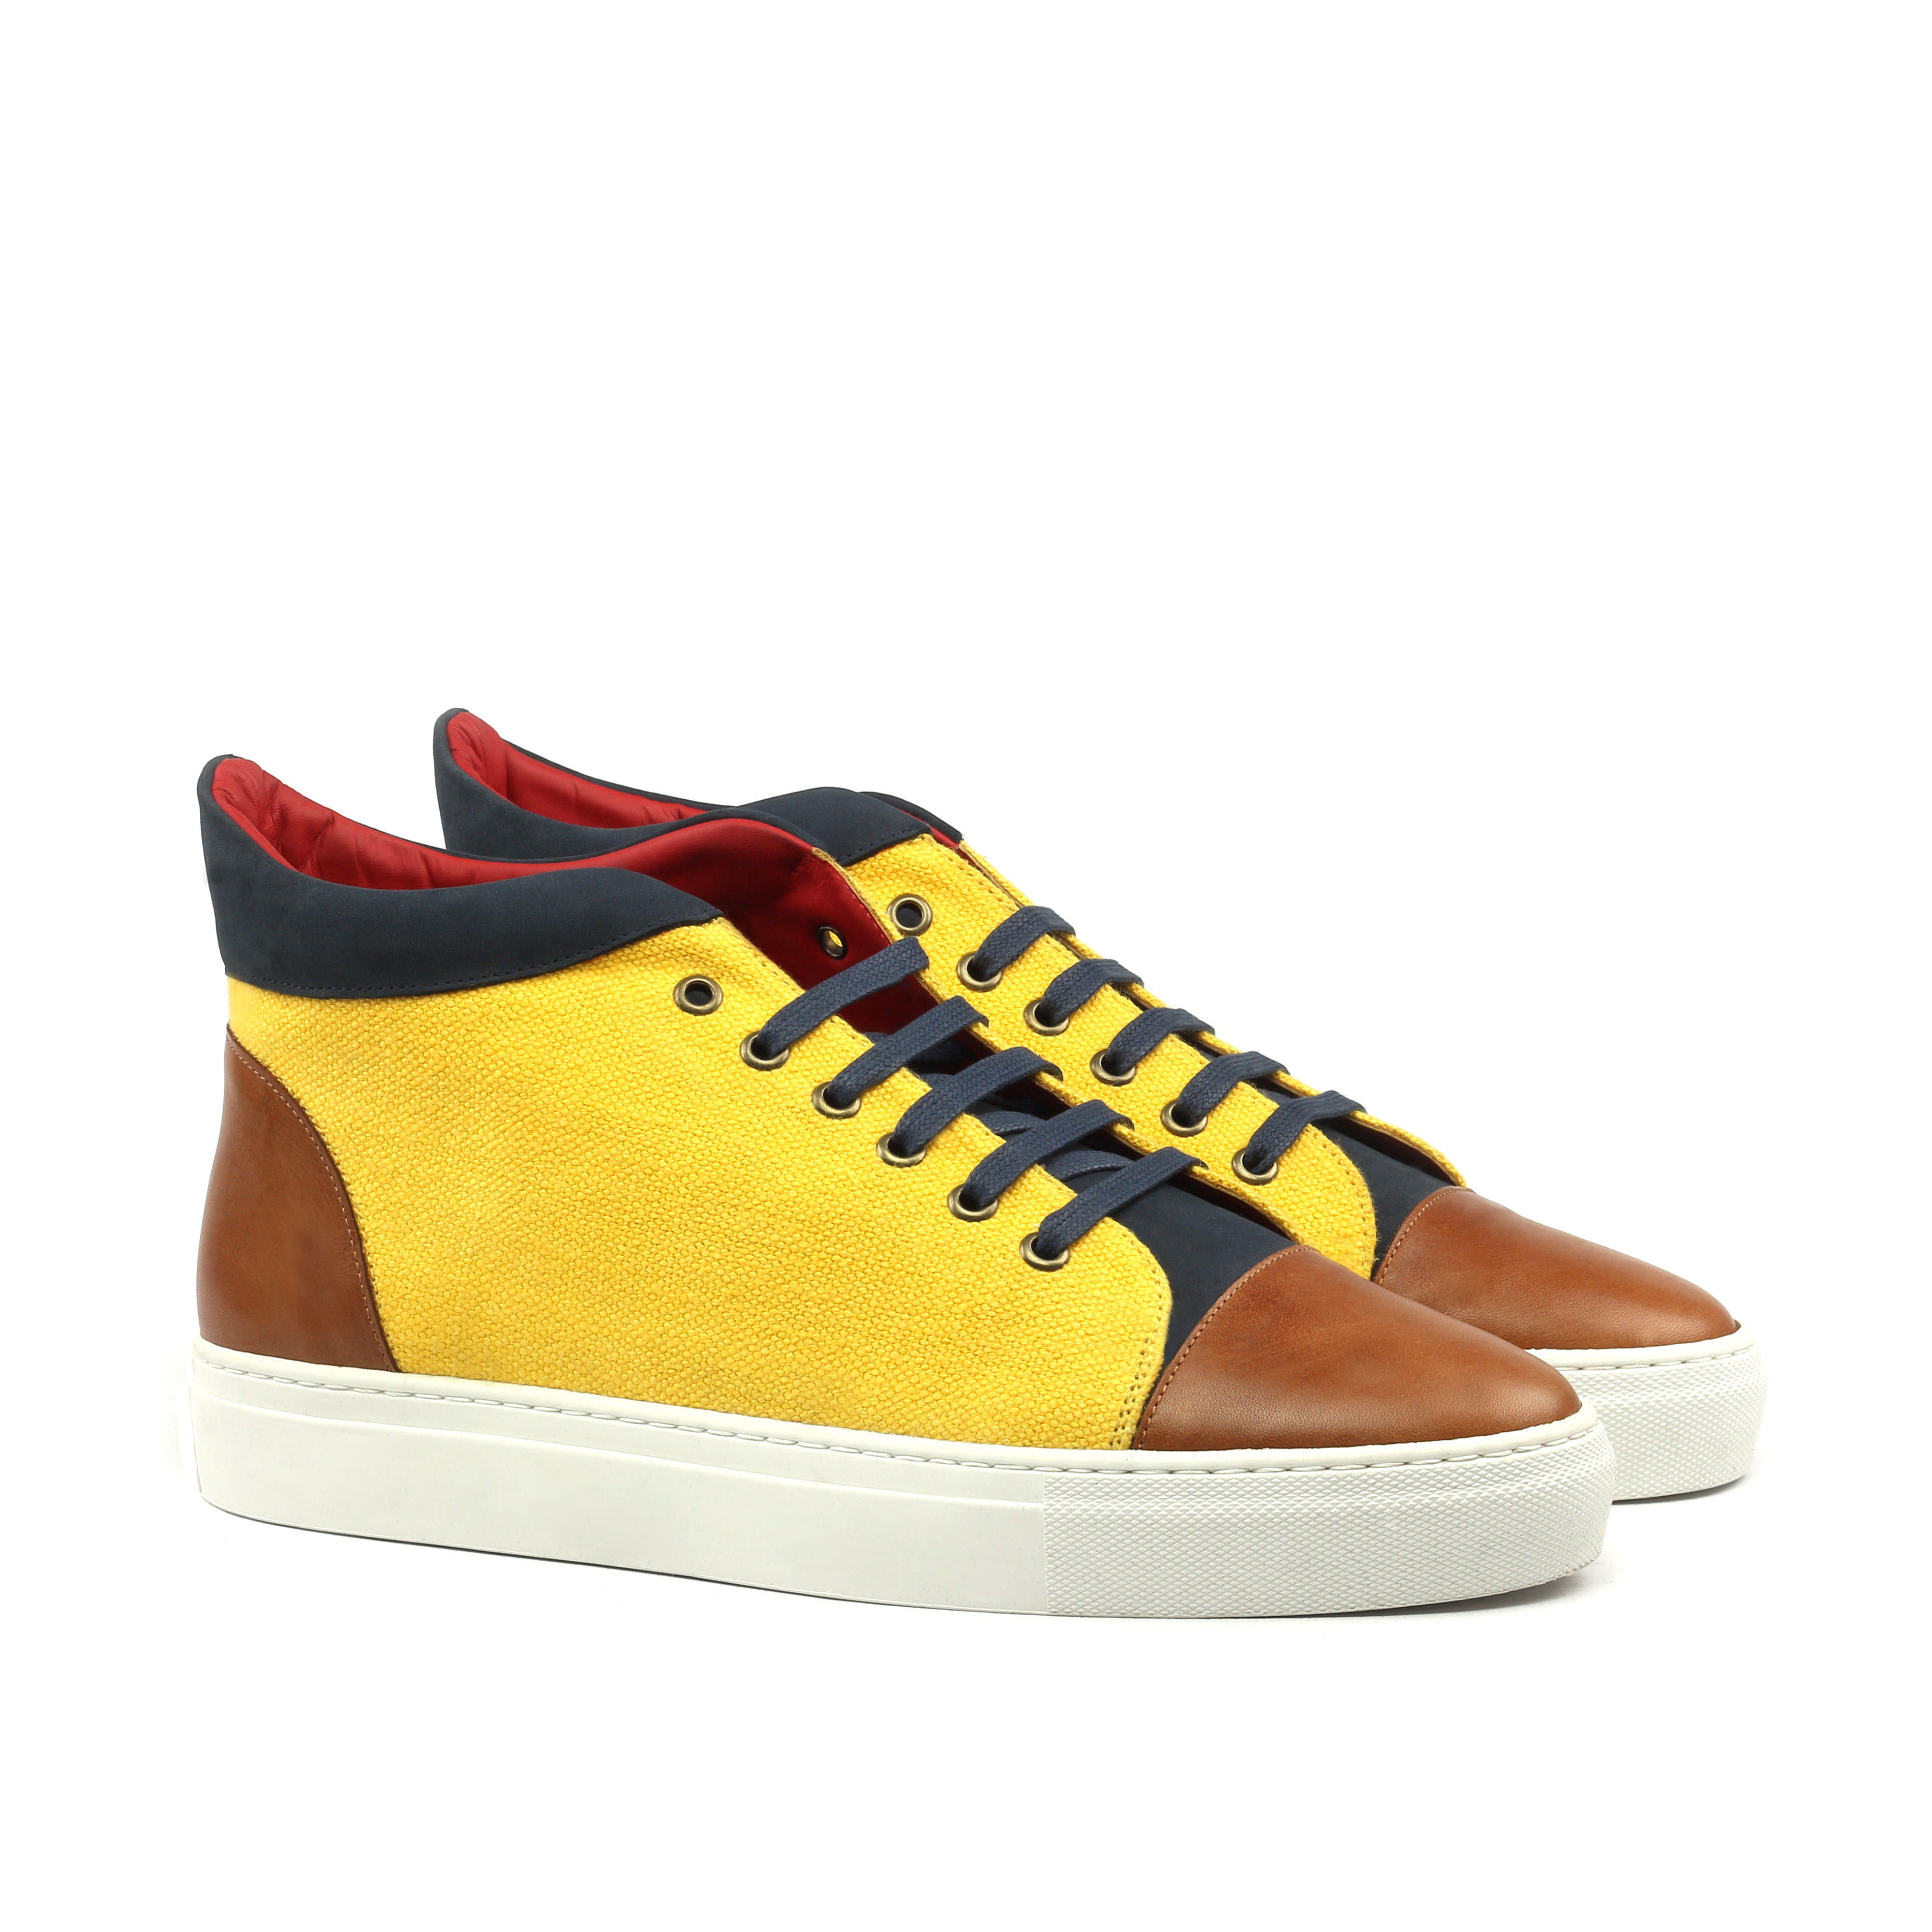 Manor of London 'The Joshua' Mustard Linen & Cognac Calfskin High-Top Trainer Luxury Custom Initials Monogrammed Front Side View